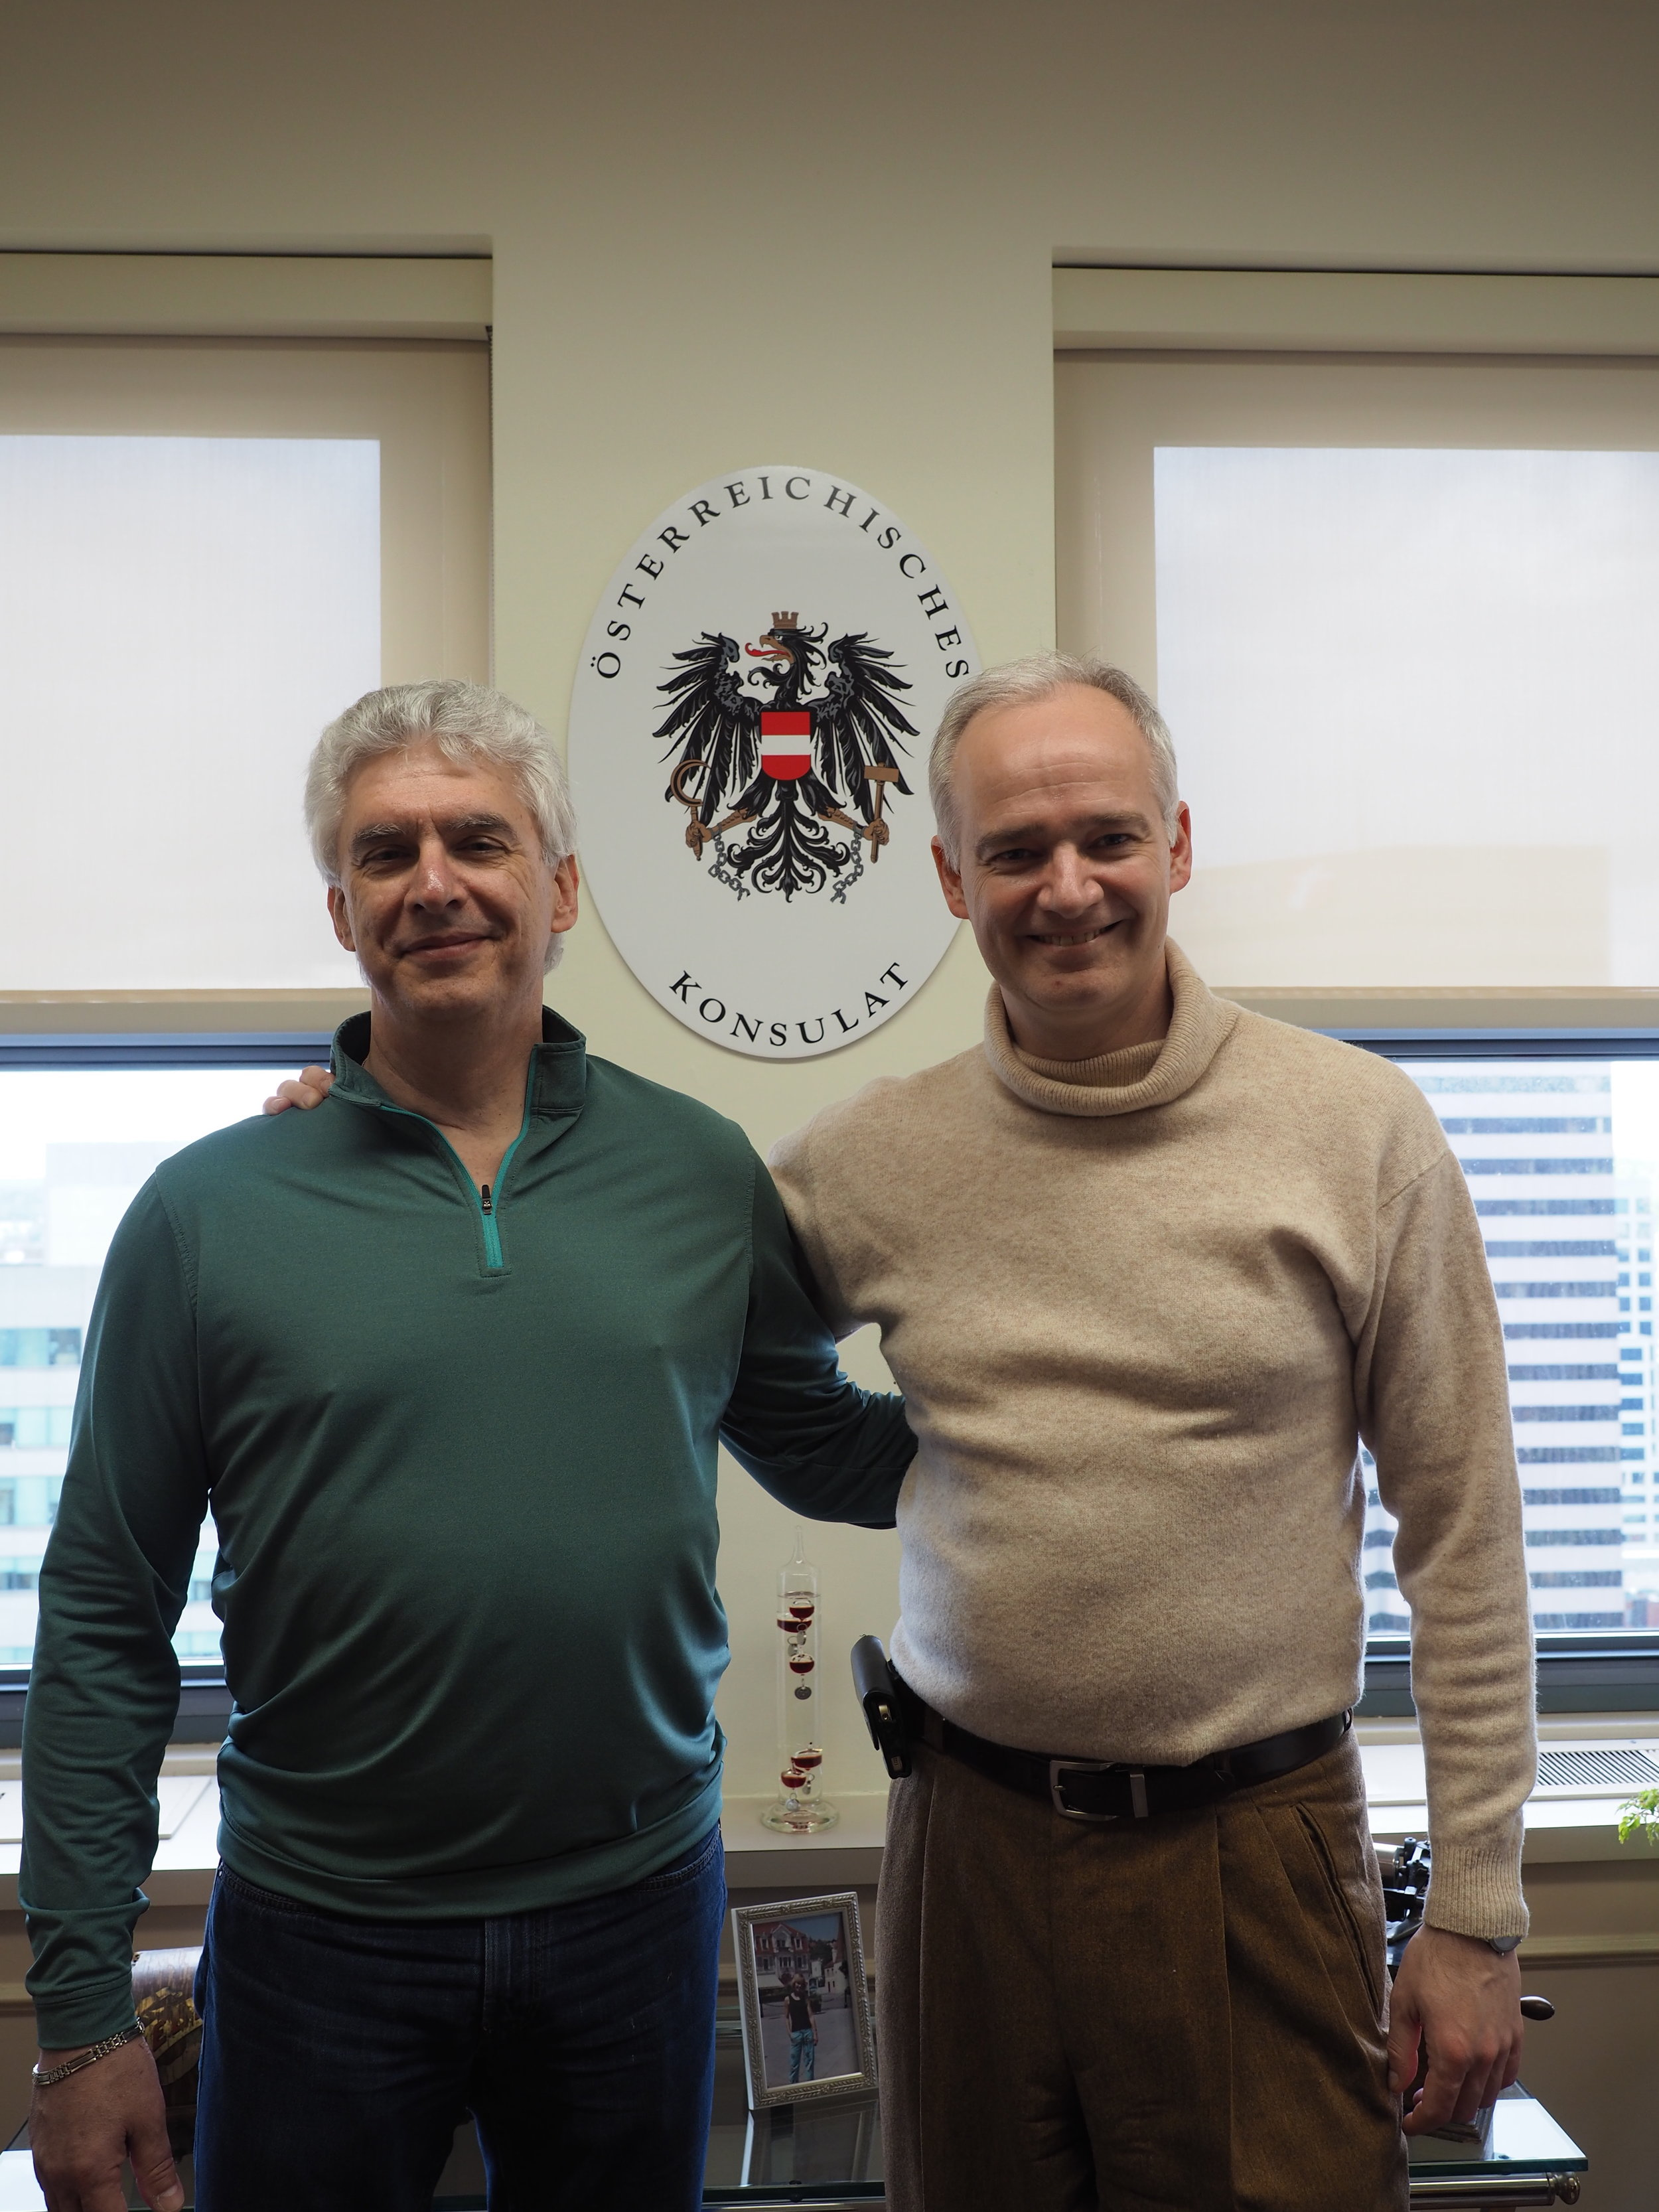 Austrian Honorary Consul Clement Luken (left) met with Thorsten Eisingerich, the Director for Press and Information at the Austrian Embassy in Washington, DC in spring 2019